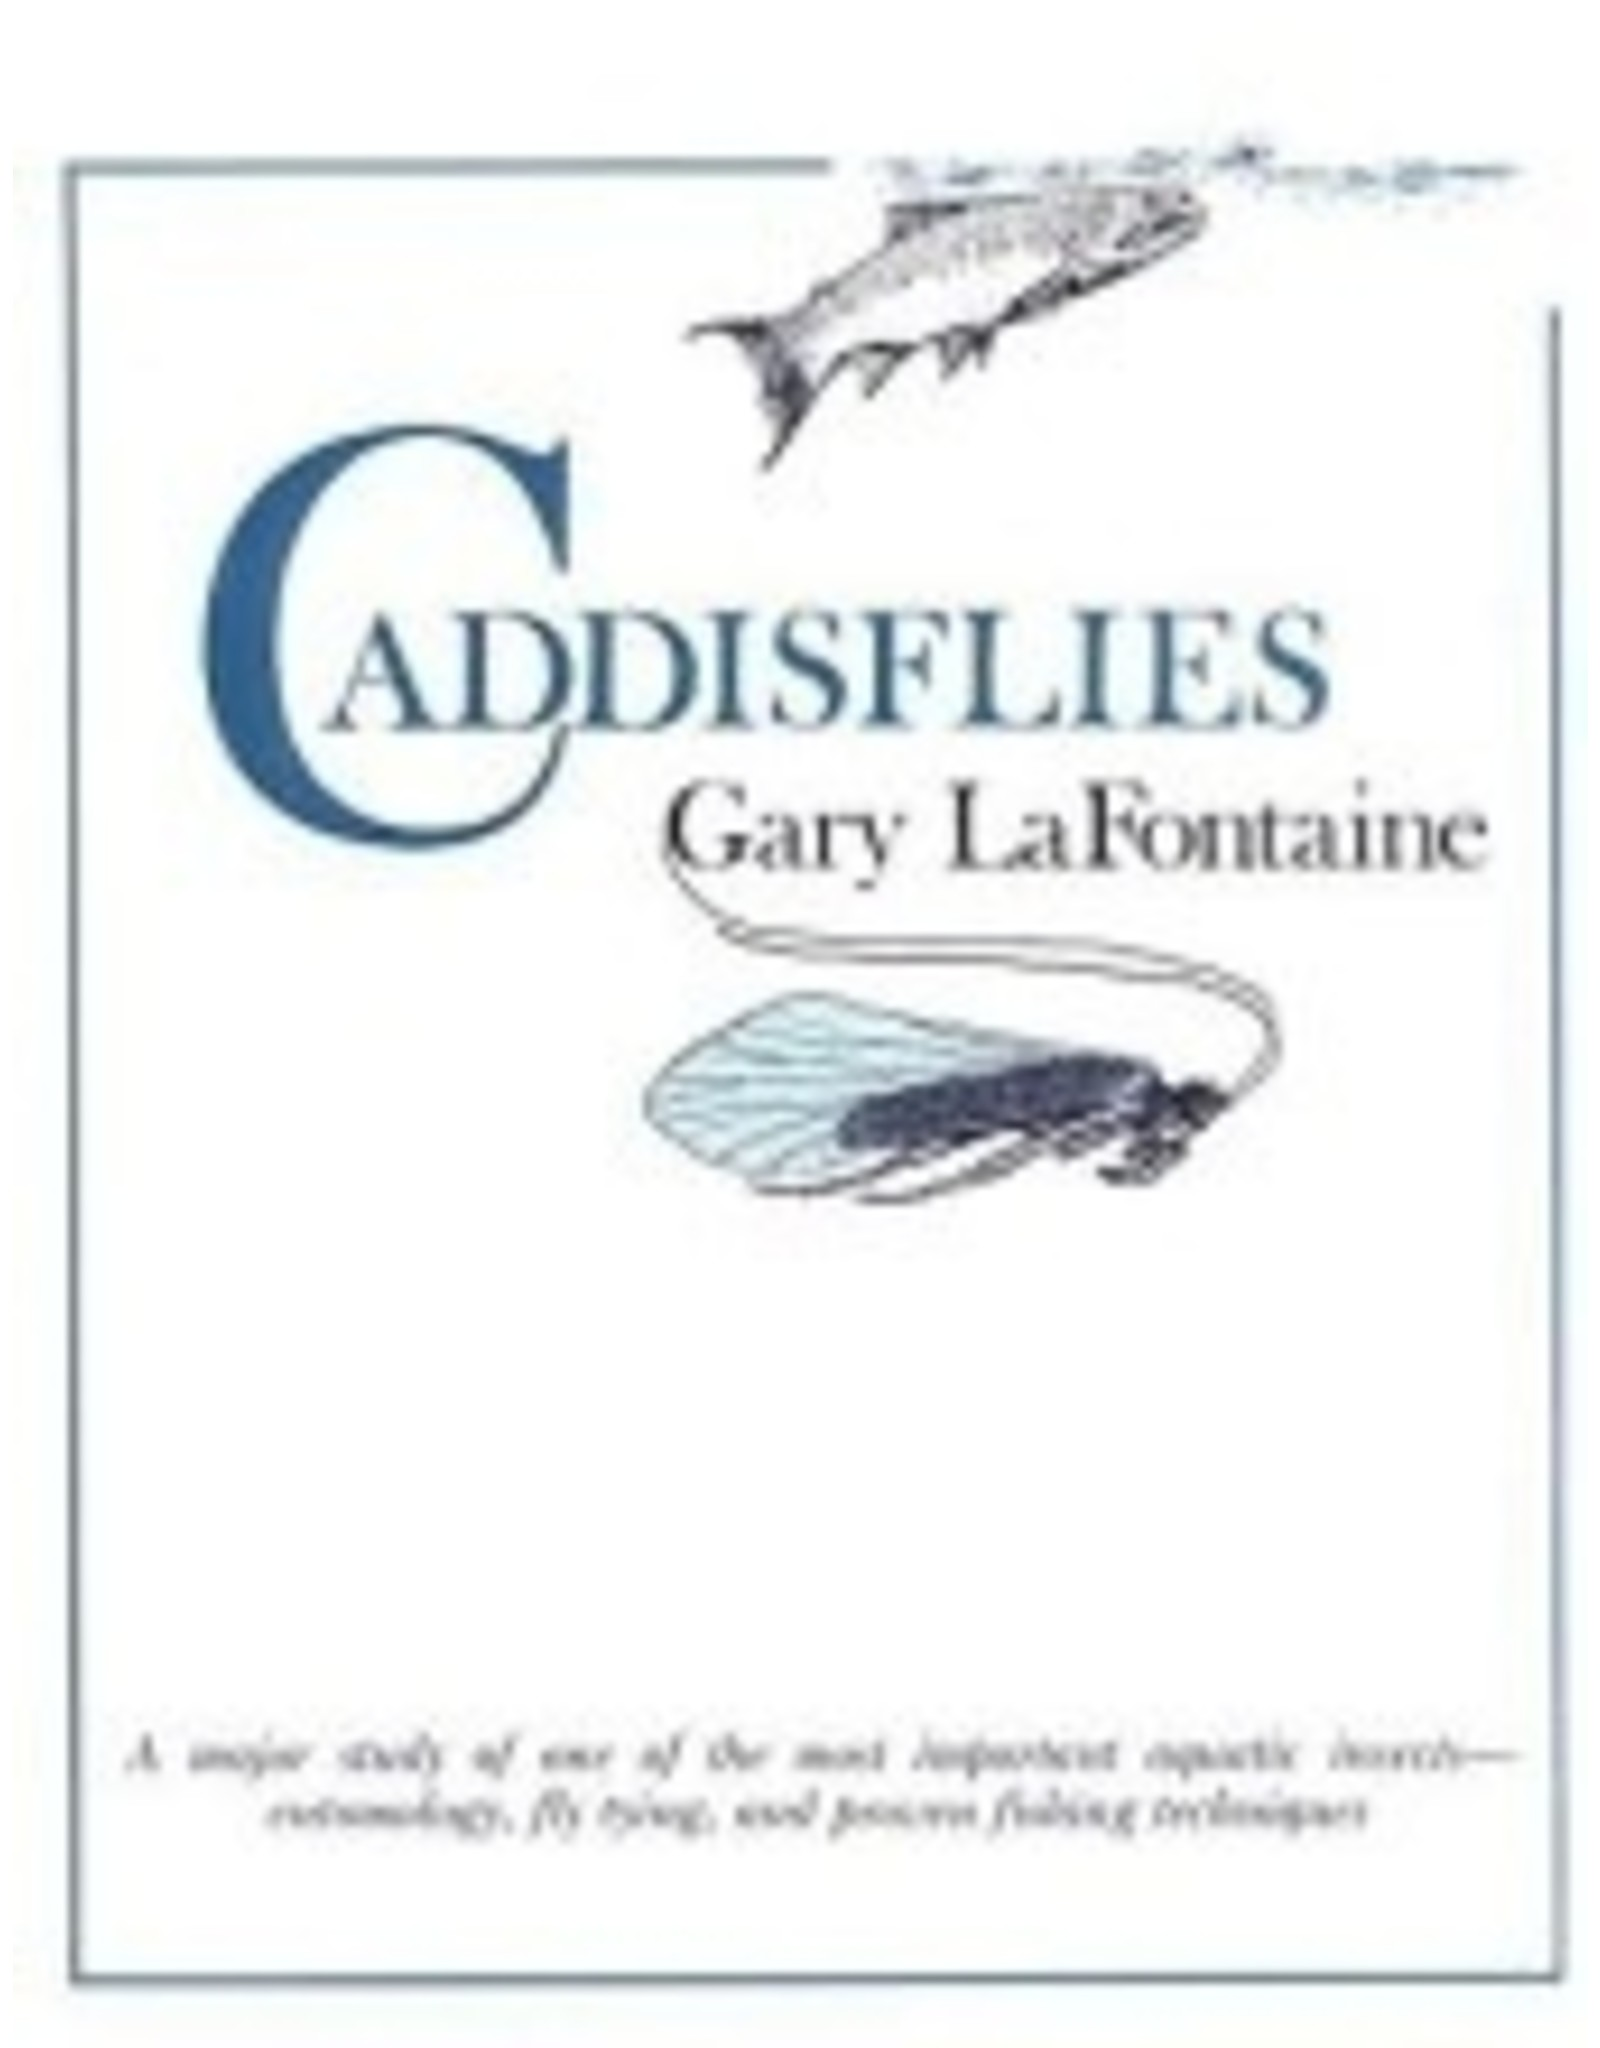 Books Caddisflies by Gary LaFontaine